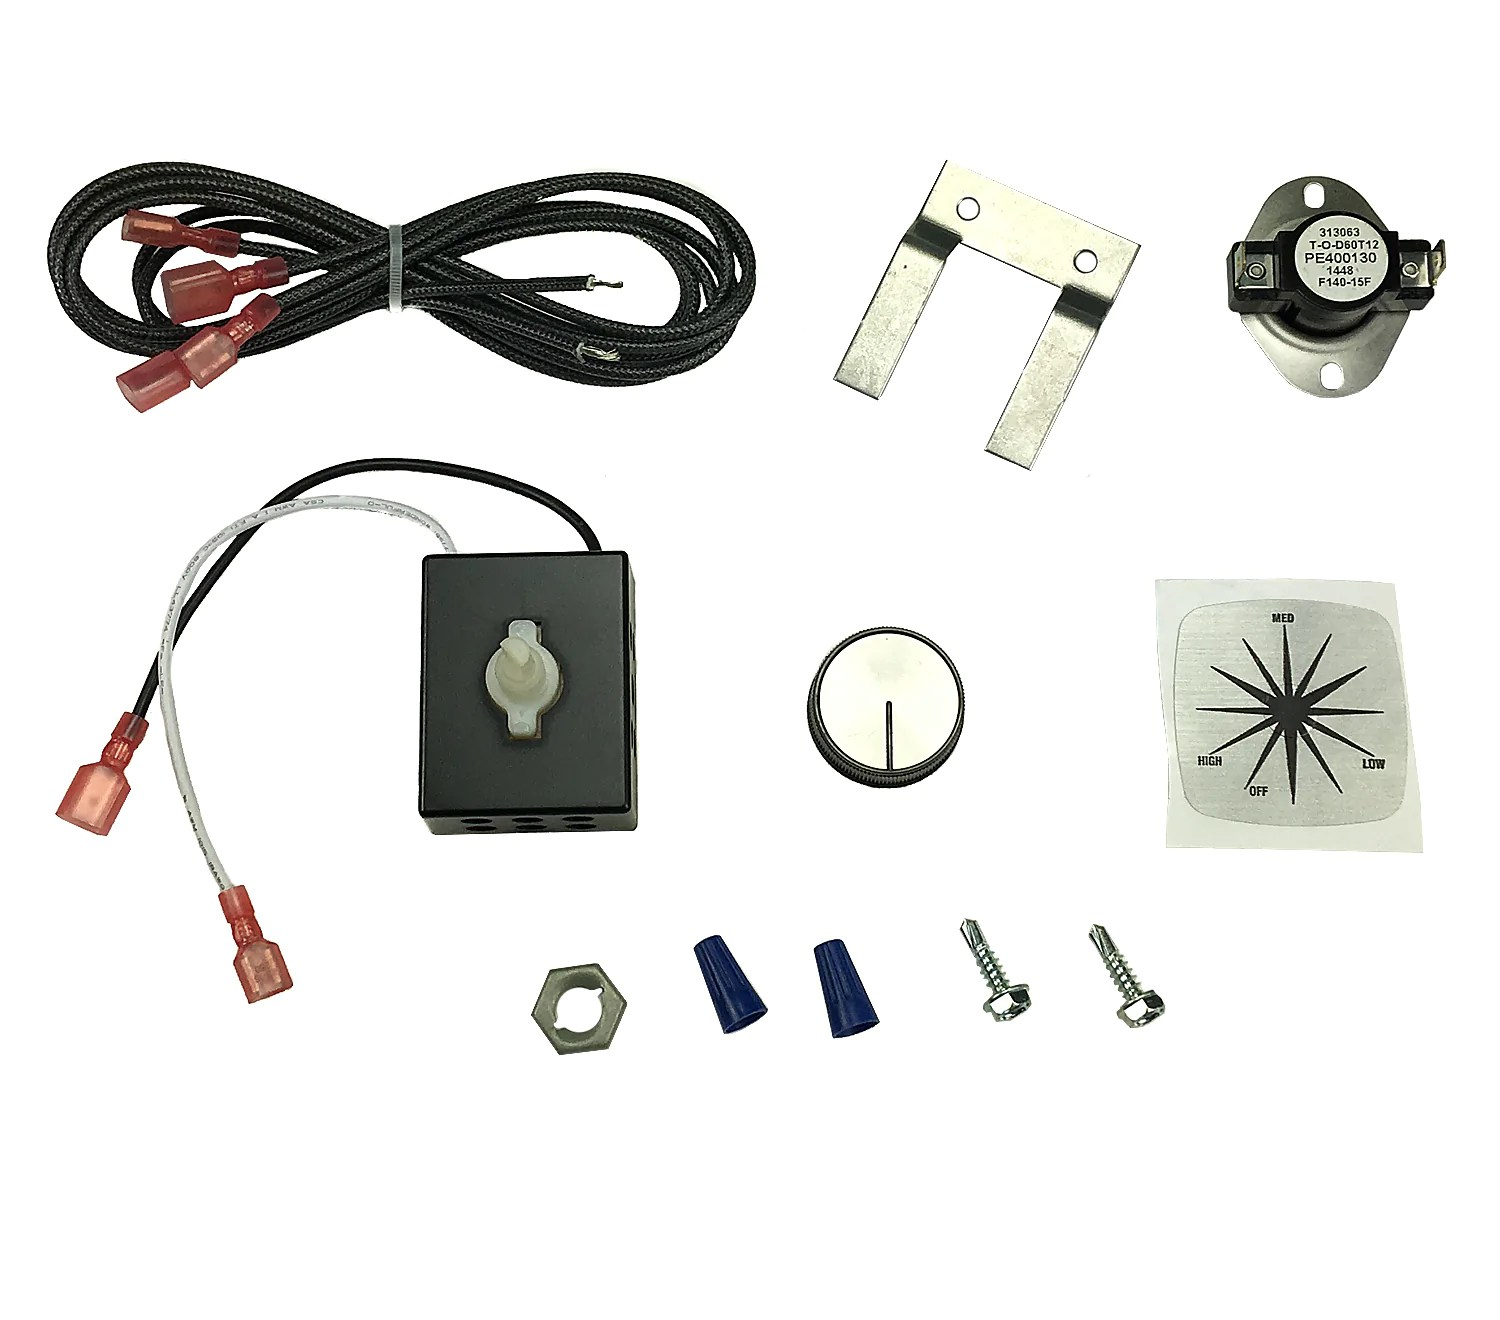 hight resolution of buck wood stove parts stove replacement parts for buck wood stoves stove parts 4 less